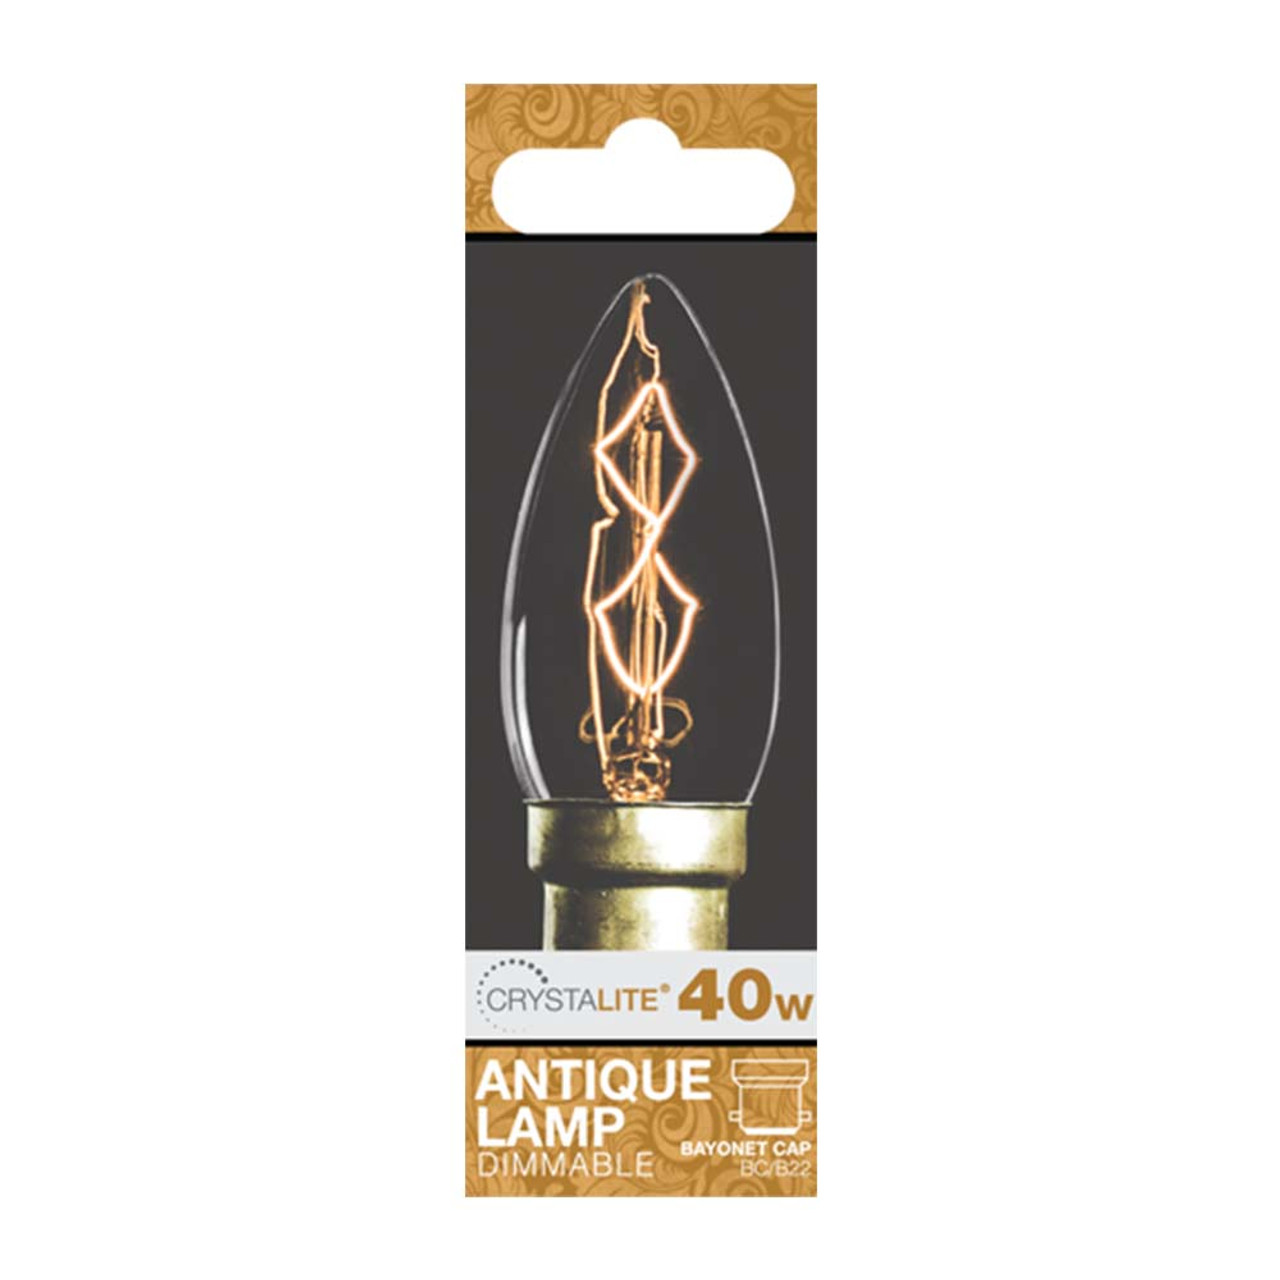 Lampe 40w 40w Crystalite Antique Candle Bc Clear Z Shape Filament 3170646